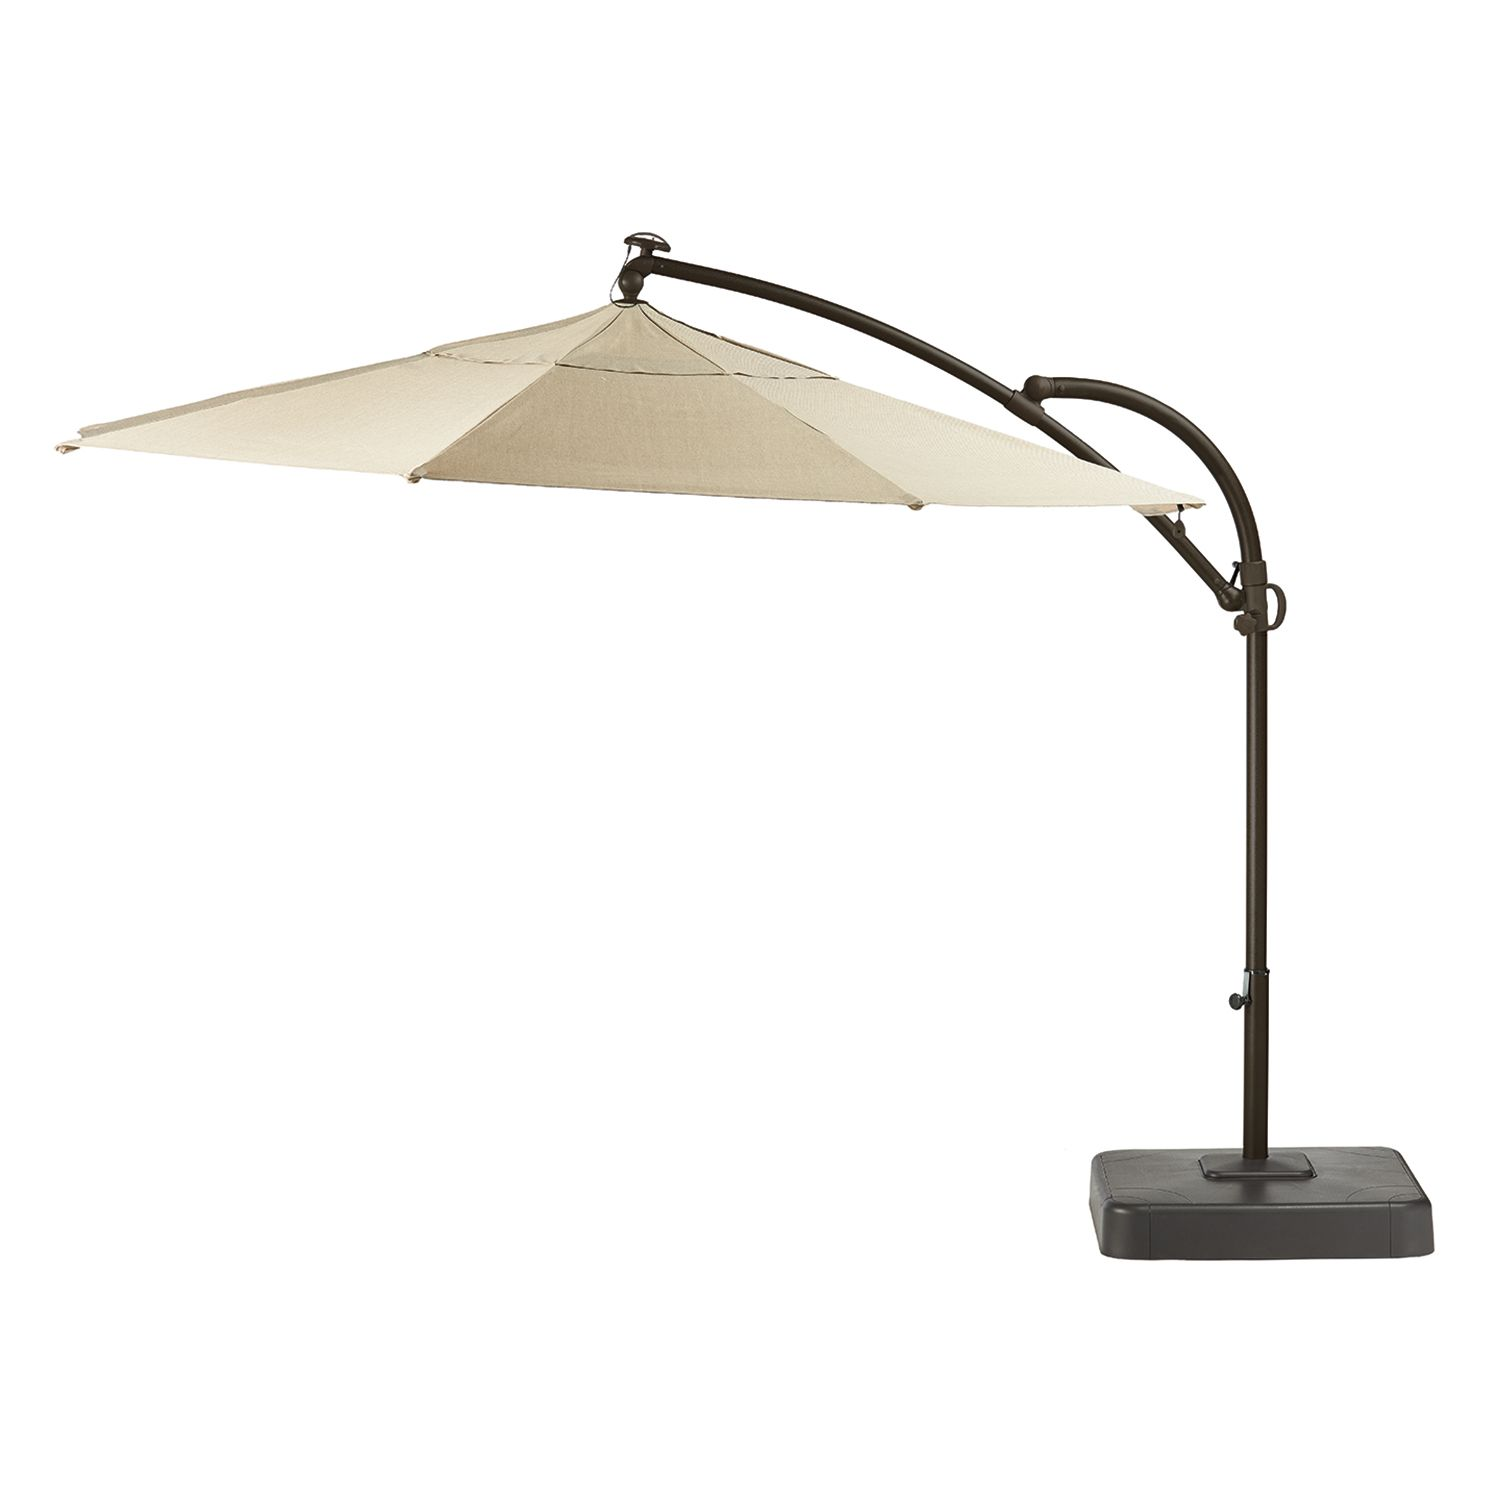 SONOMA Goods For Life™ Cantilever LED Solar Umbrella